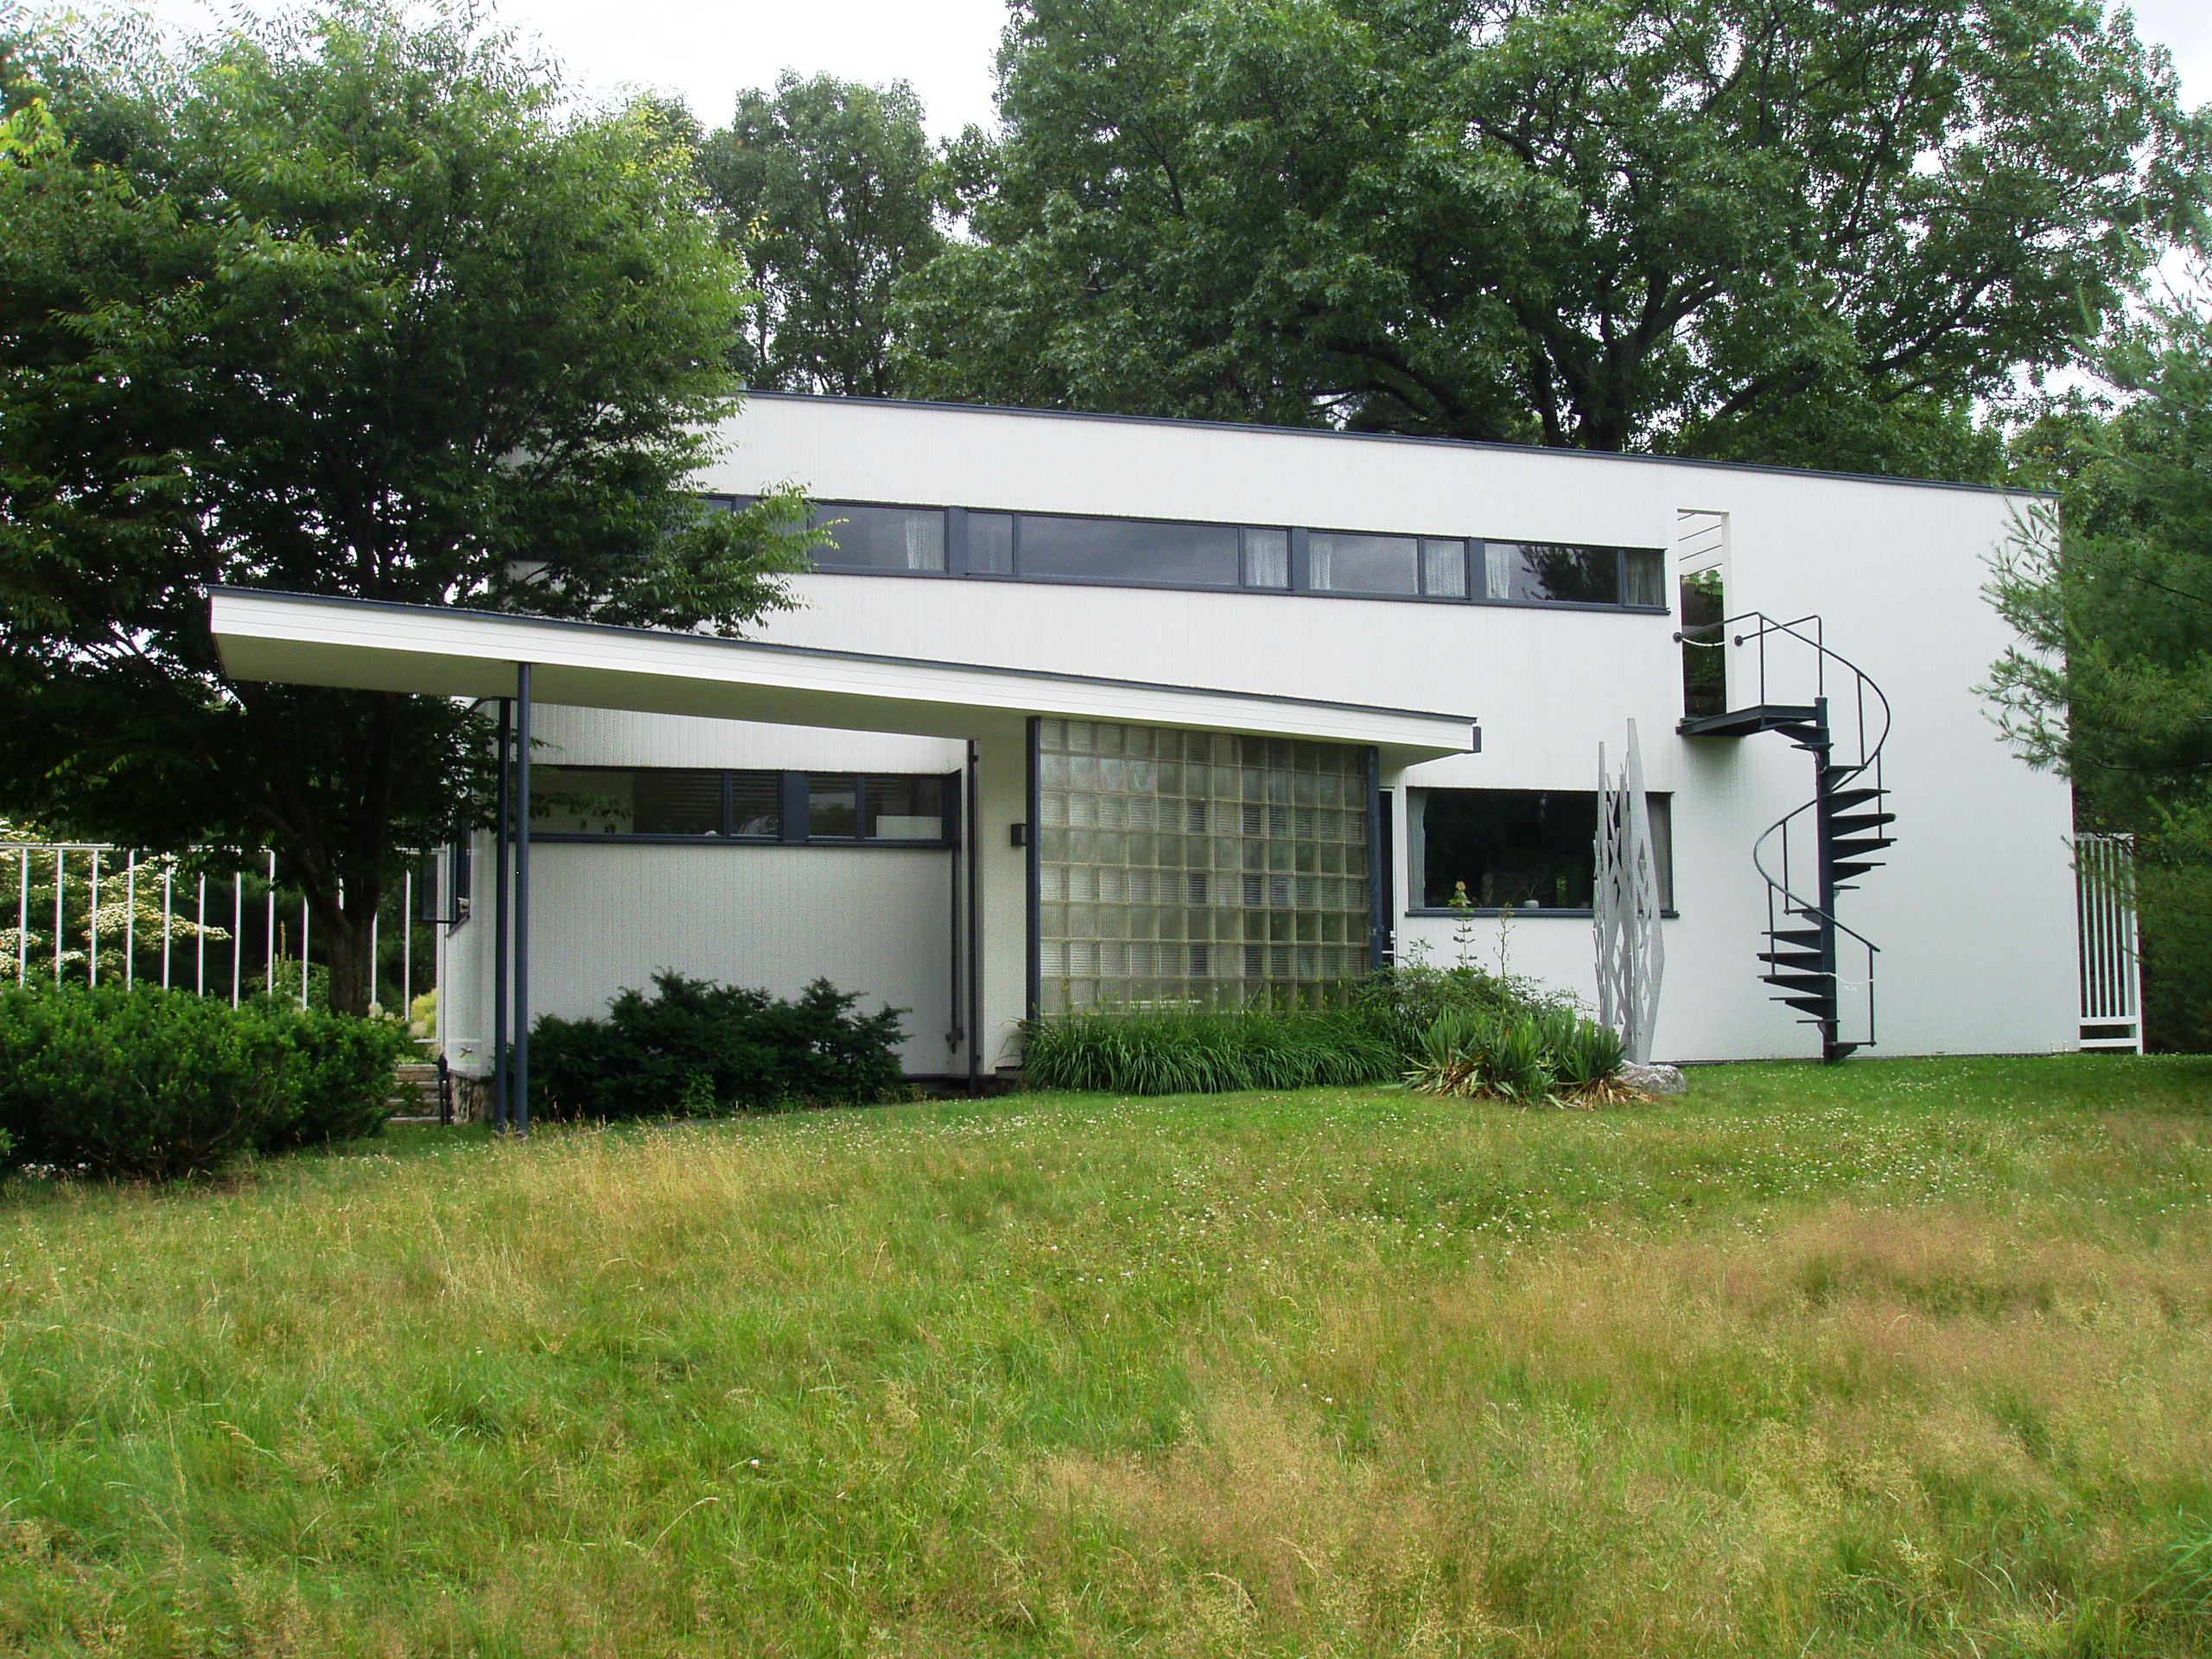 The Gropius House & The DeCordova Sculpture Park & Museum